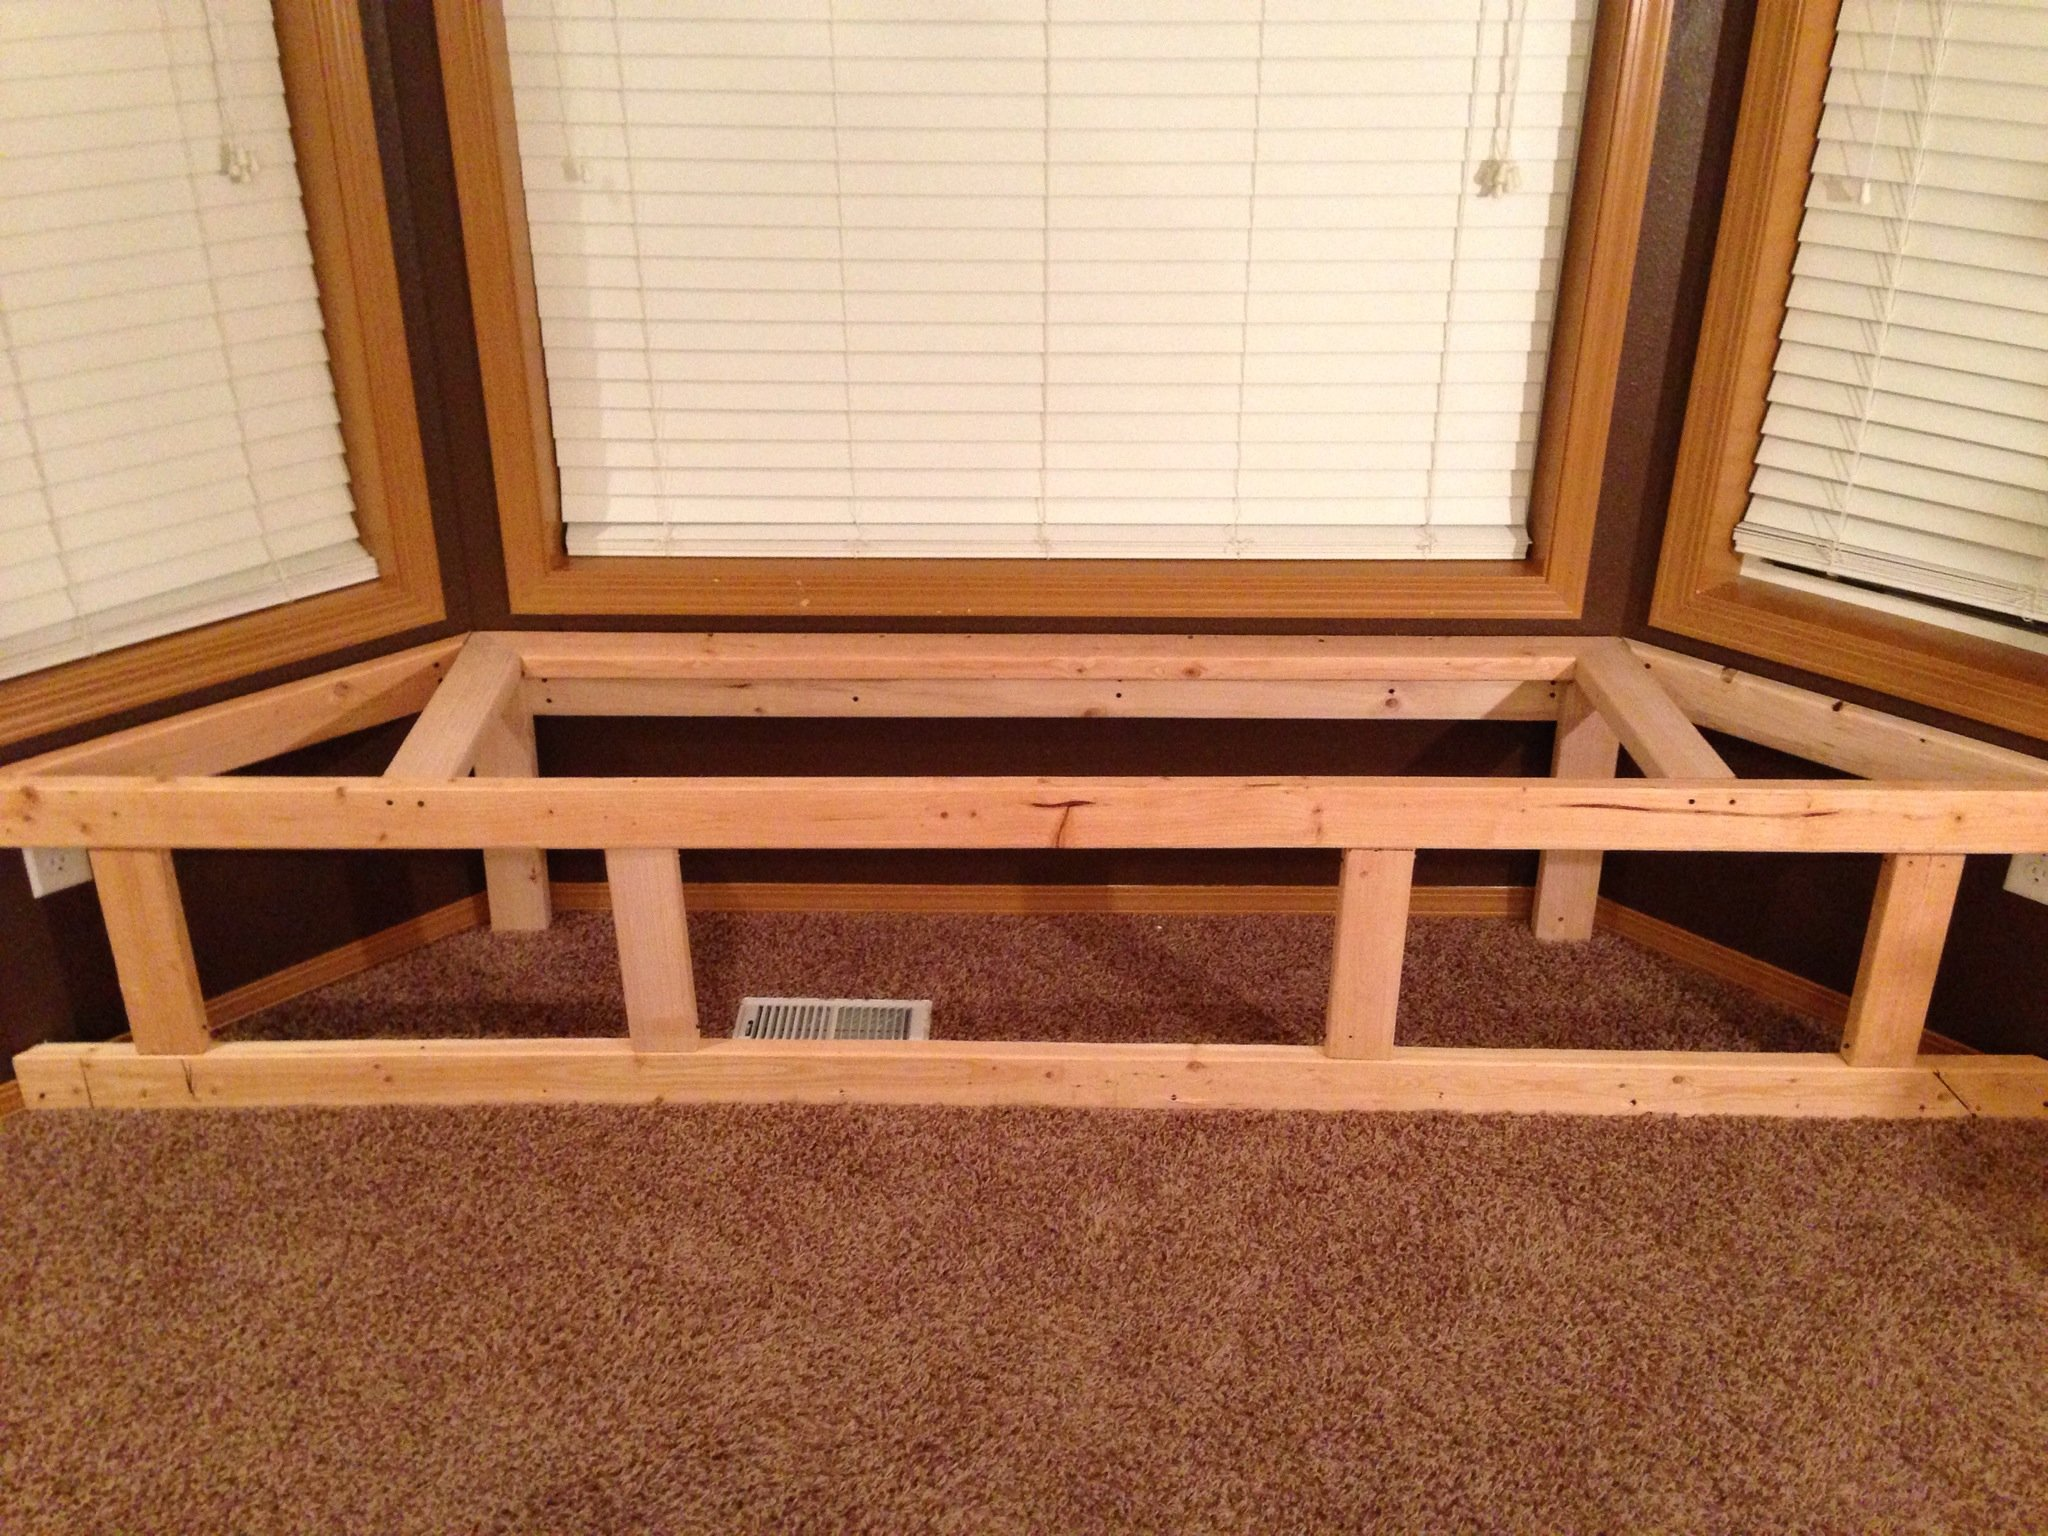 How To Make A Bay Window Bench Seat With Storage B C Guides